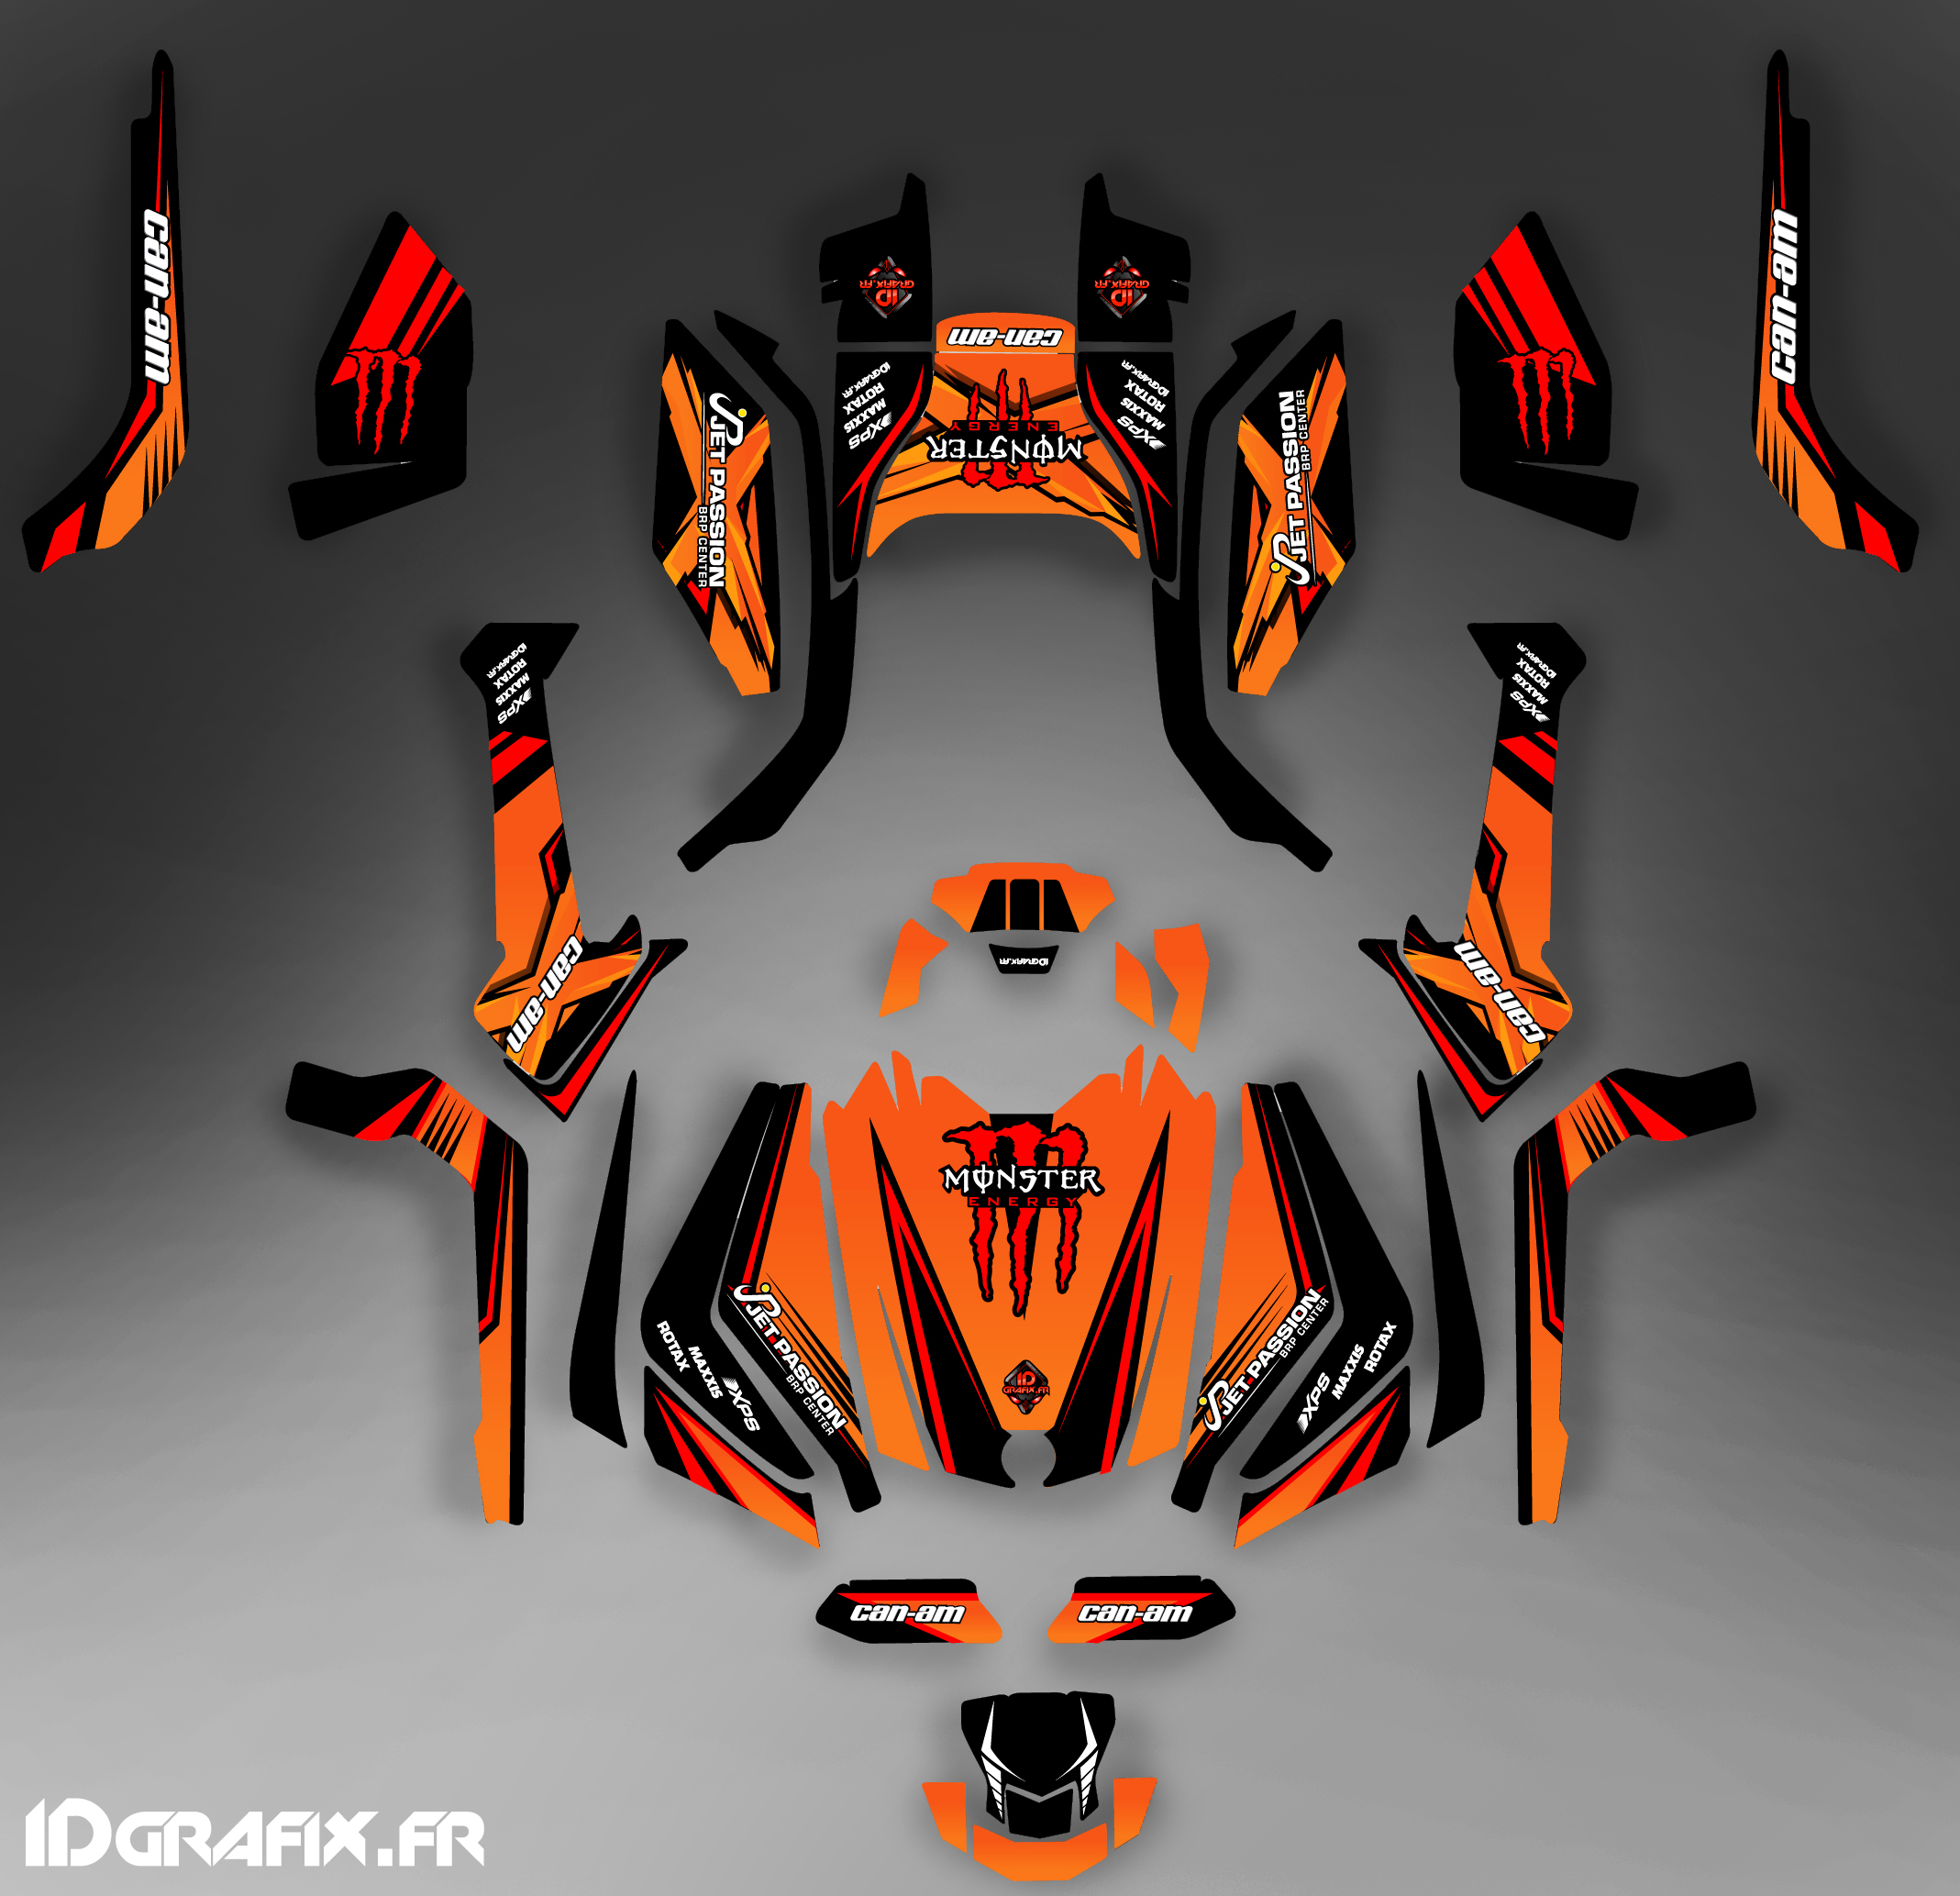 Kit décoration Can Am Outlander G2 , 2015. Outlander g2 max Monster Orange